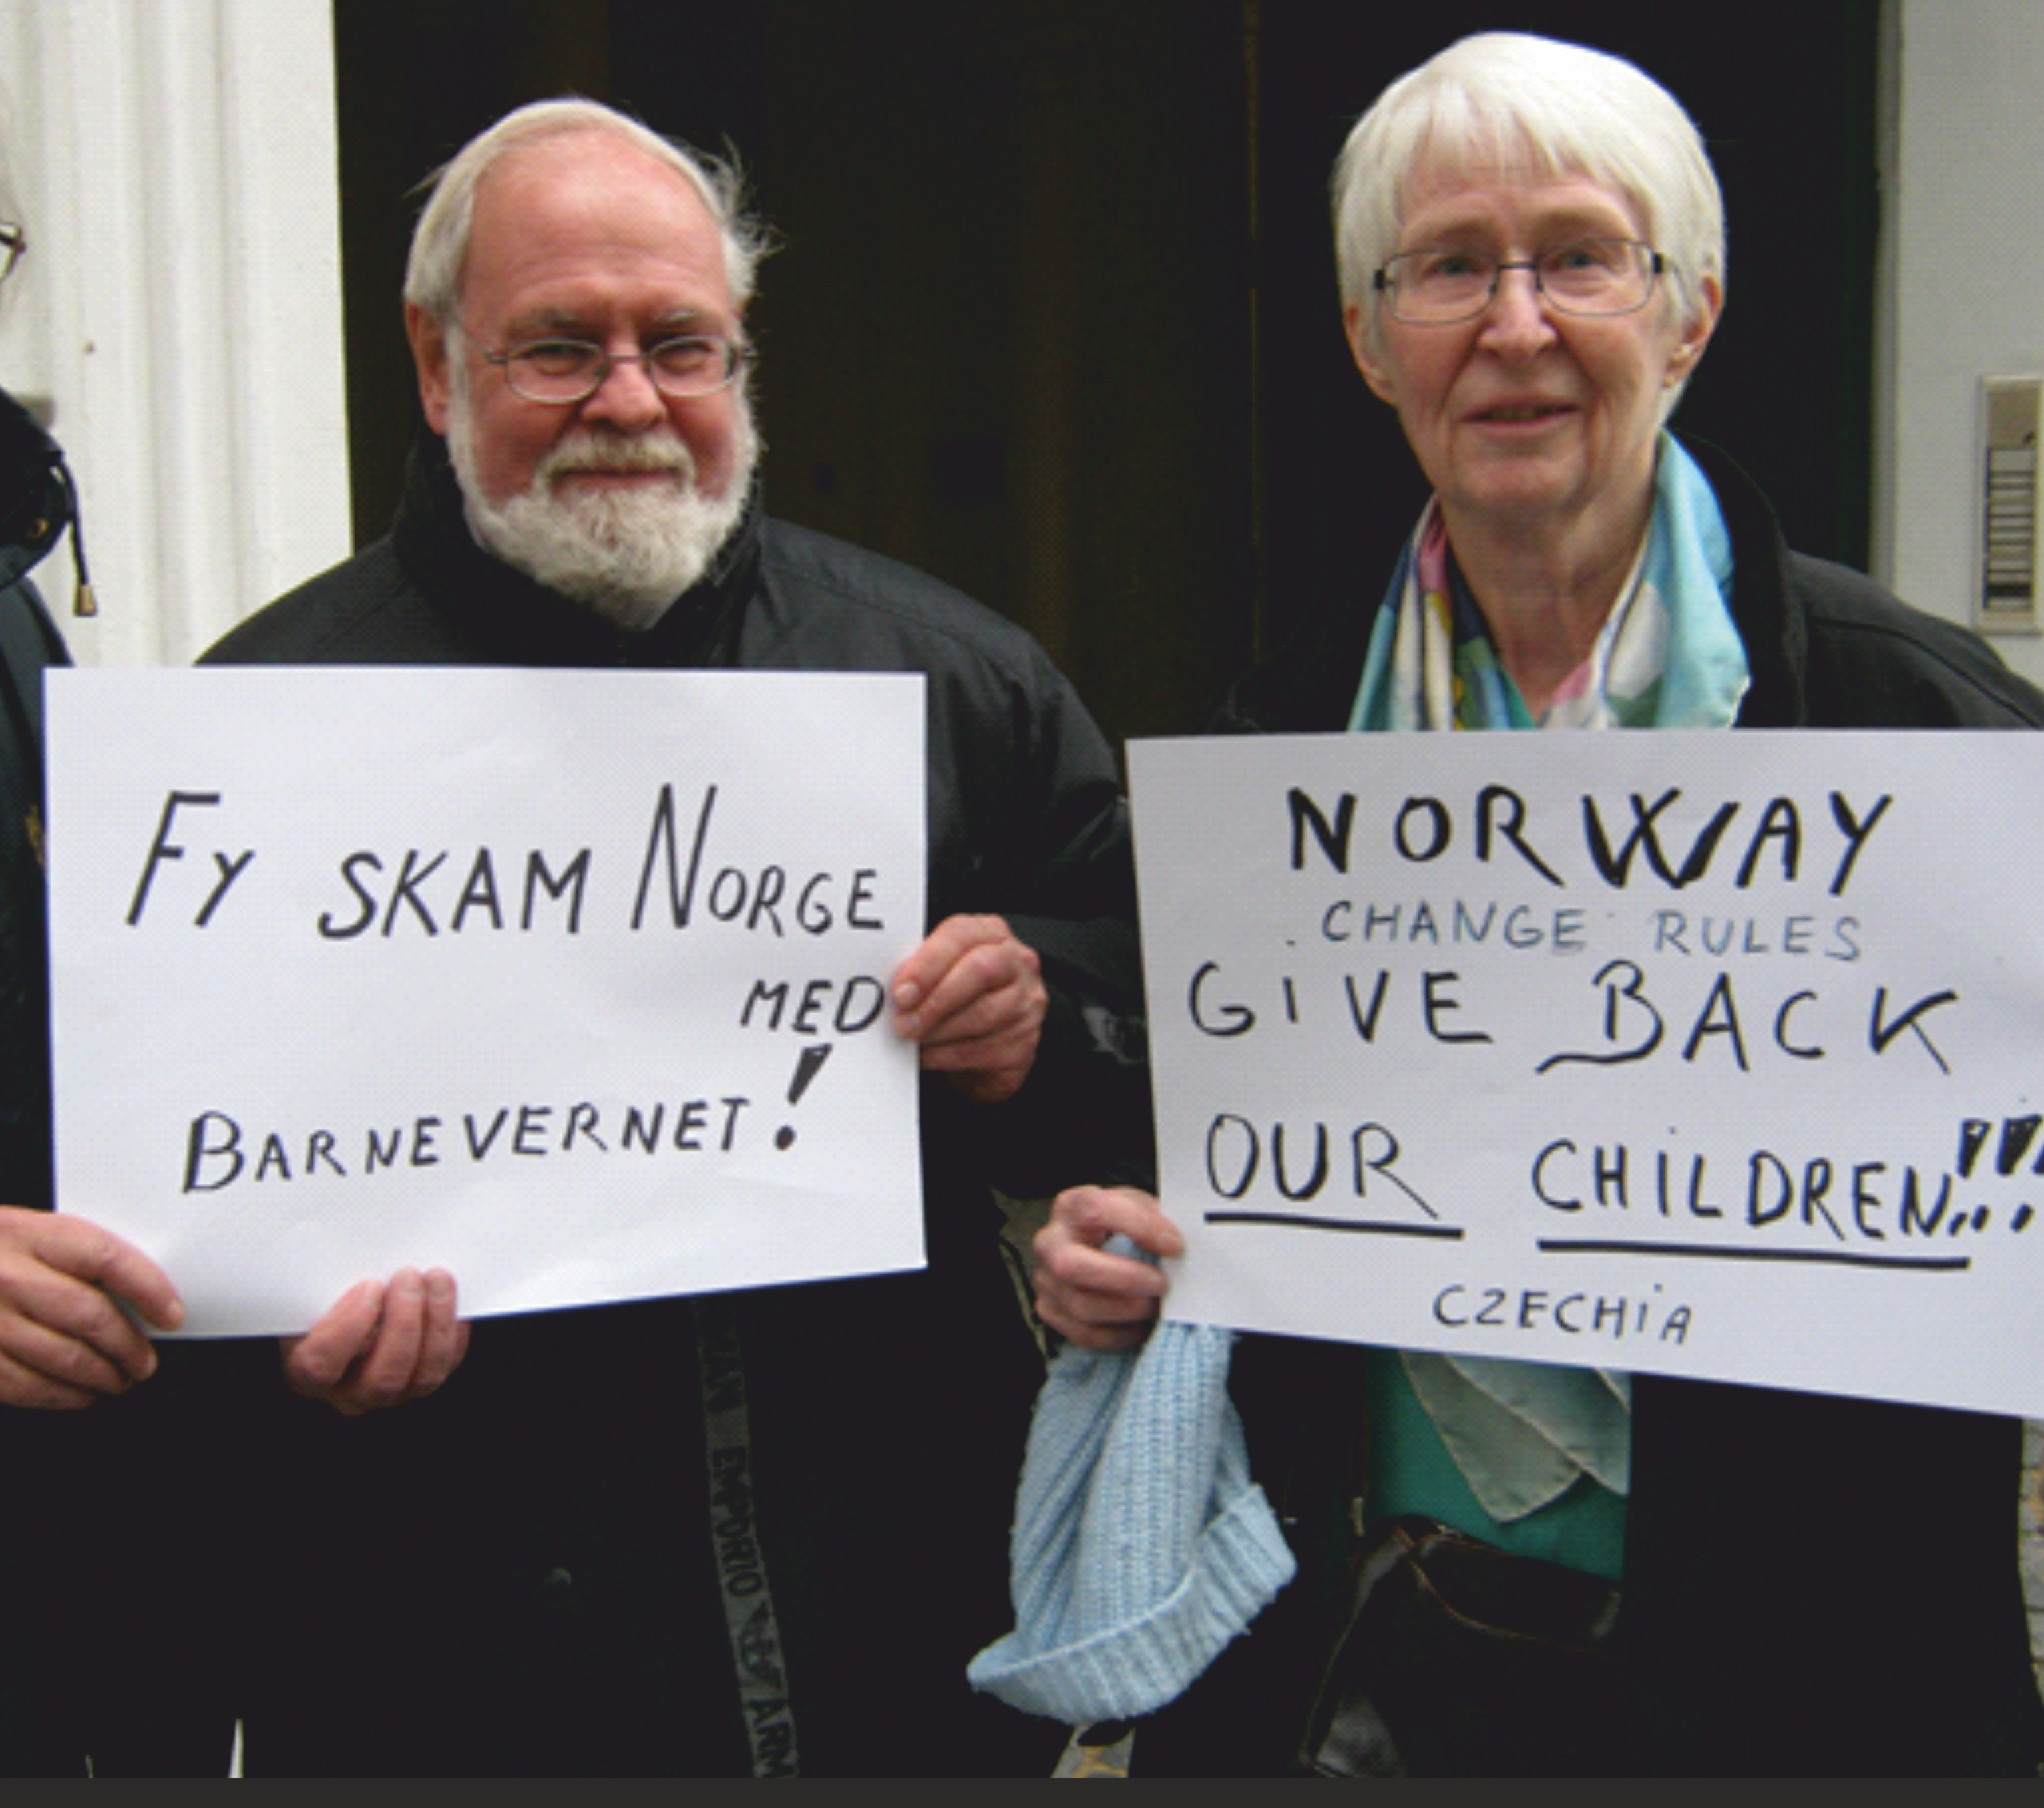 A case exposing the double standards of Norway's CPS by Jan Simonsen